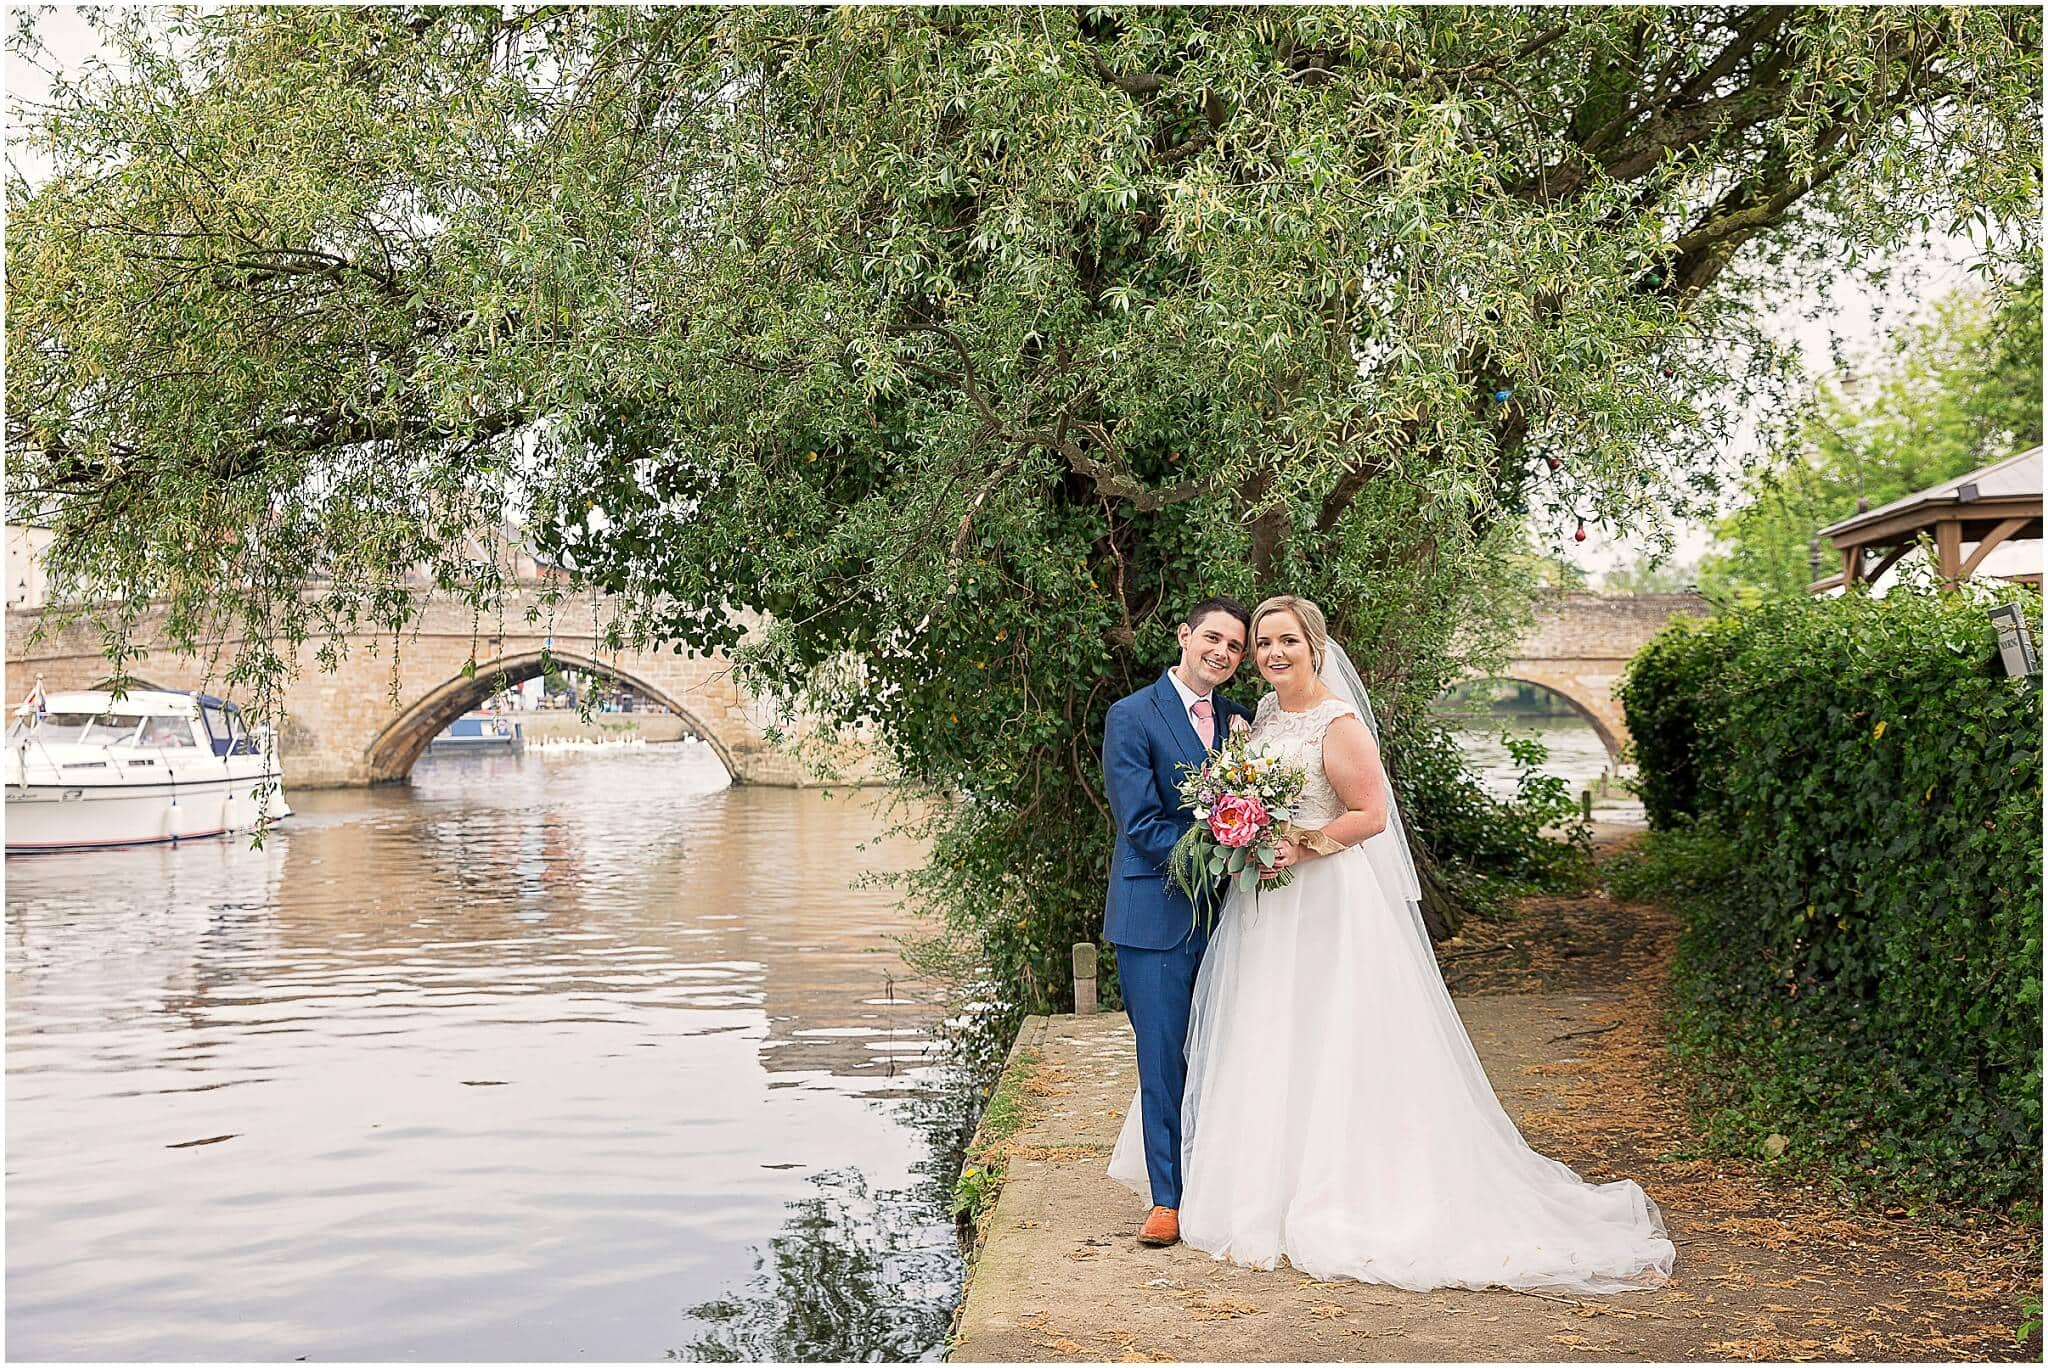 Bride and Groom by the River Ouse